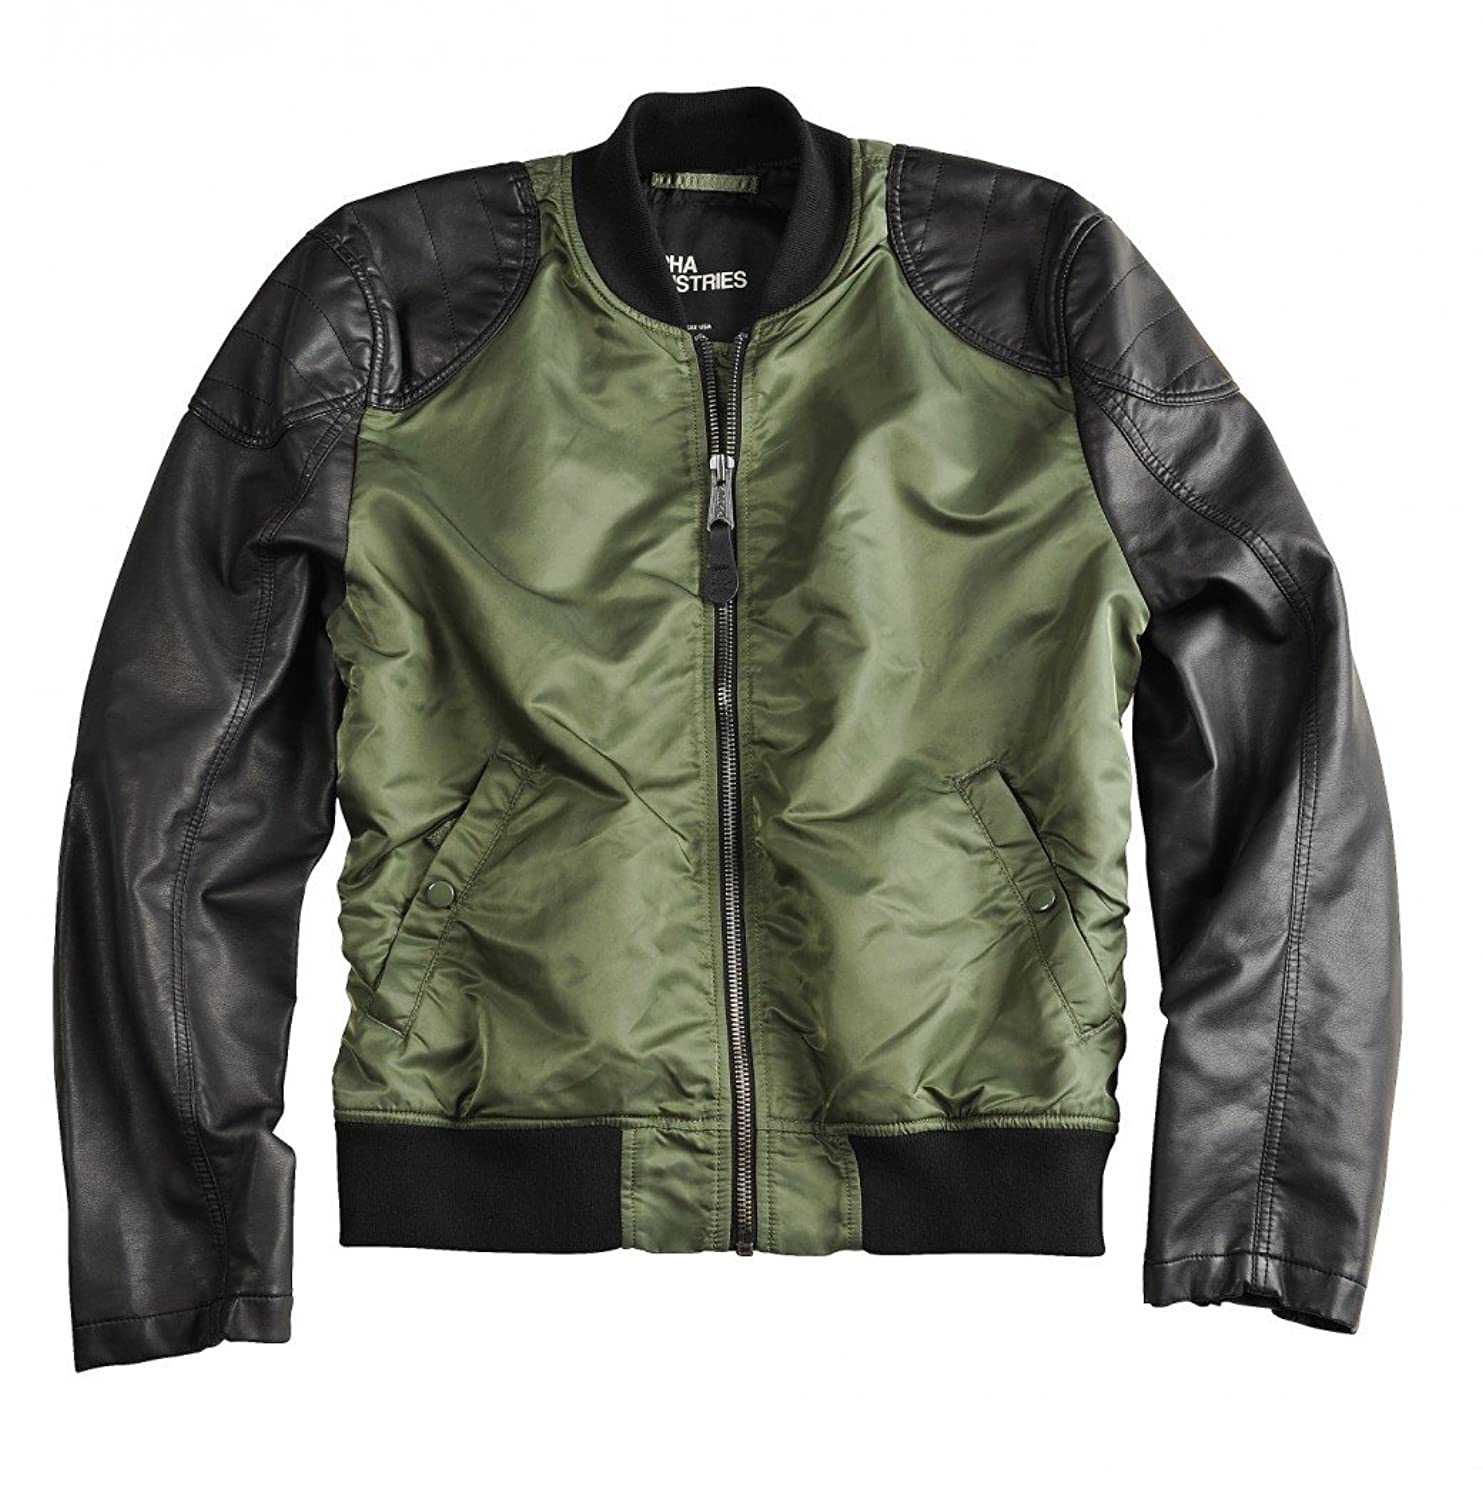 Alpha Industries Herren Übergangsjacke Dirt Bike schwarz